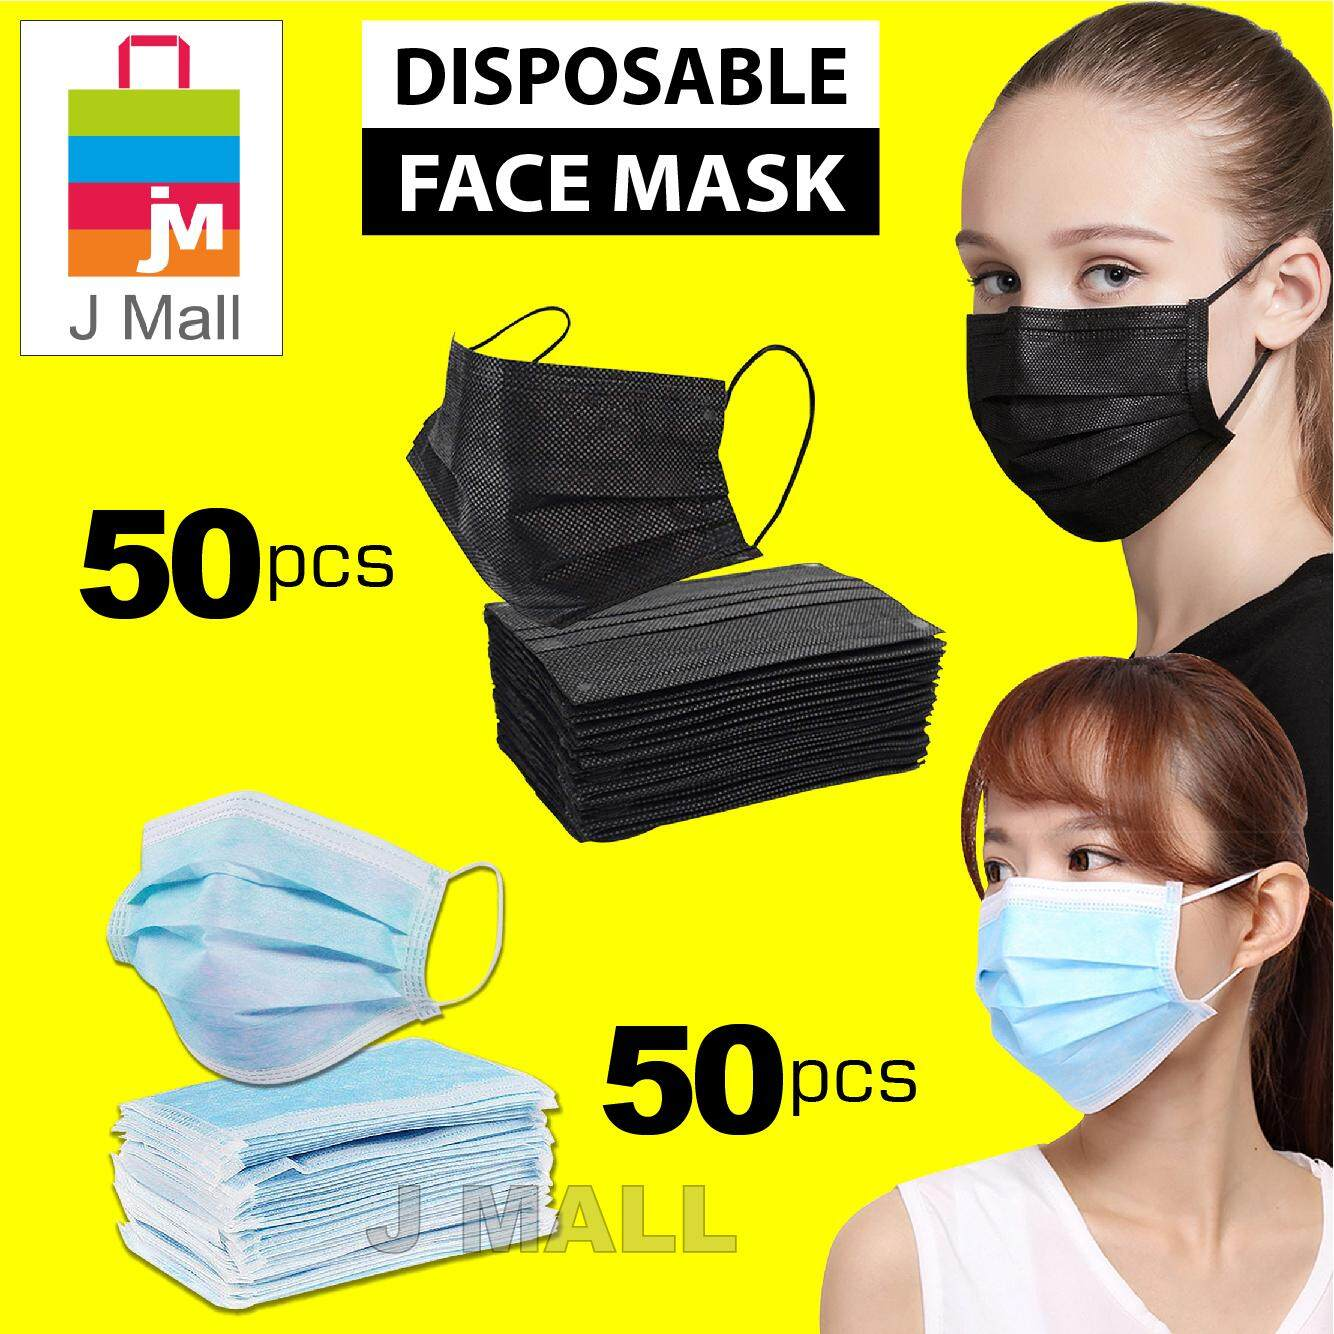 50PCS Face Mask Surgical Disposable 3ply Face Mouth Mask Filter BLUE/ BLACK